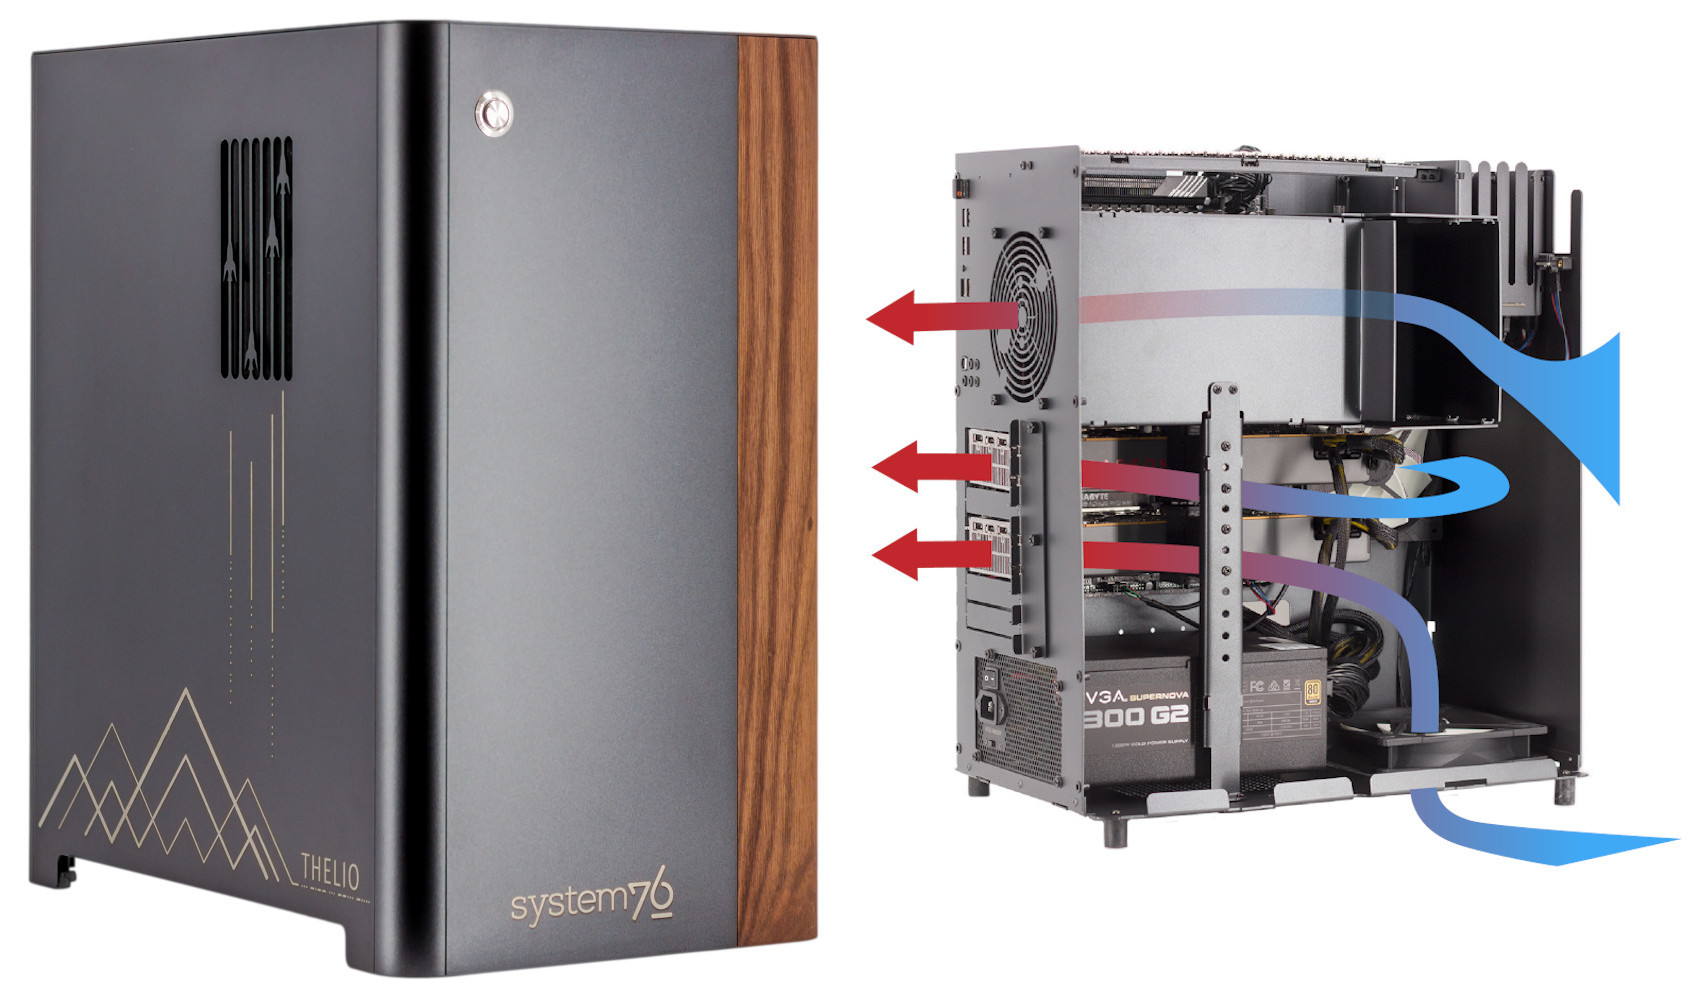 As AMD launch the monster 3990X CPU, System76 offer it up with their stylish Thelio Major